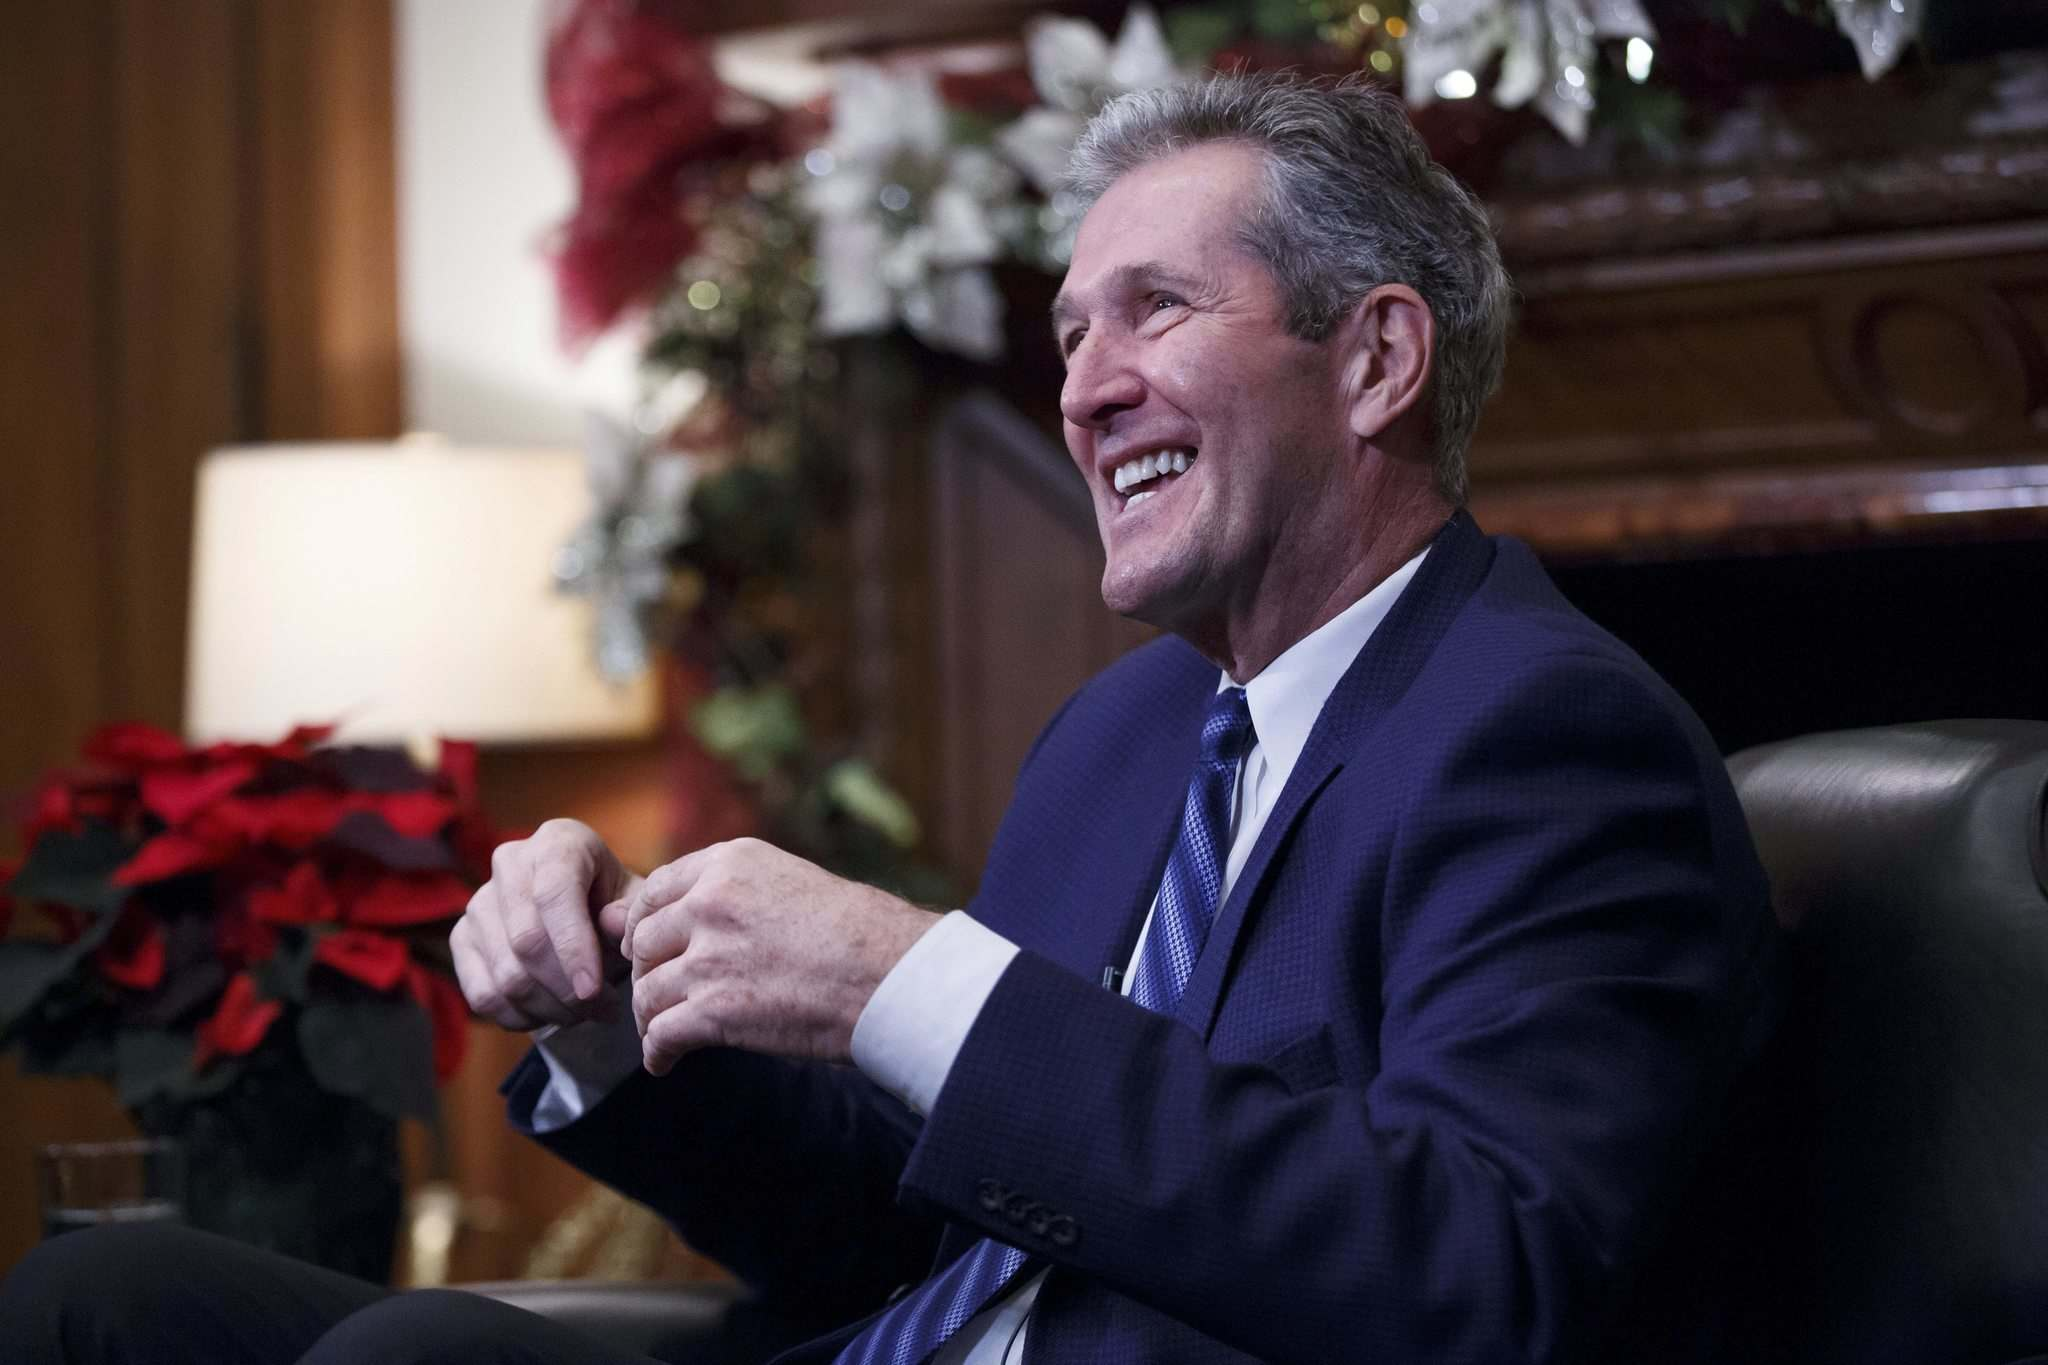 """""""Money without a plan is not really money well-allocated. Start with a planning process. That's what we're partnering with the city to do,"""" Brian Pallister said. (Mike Deal / Winnipeg Free Press)"""